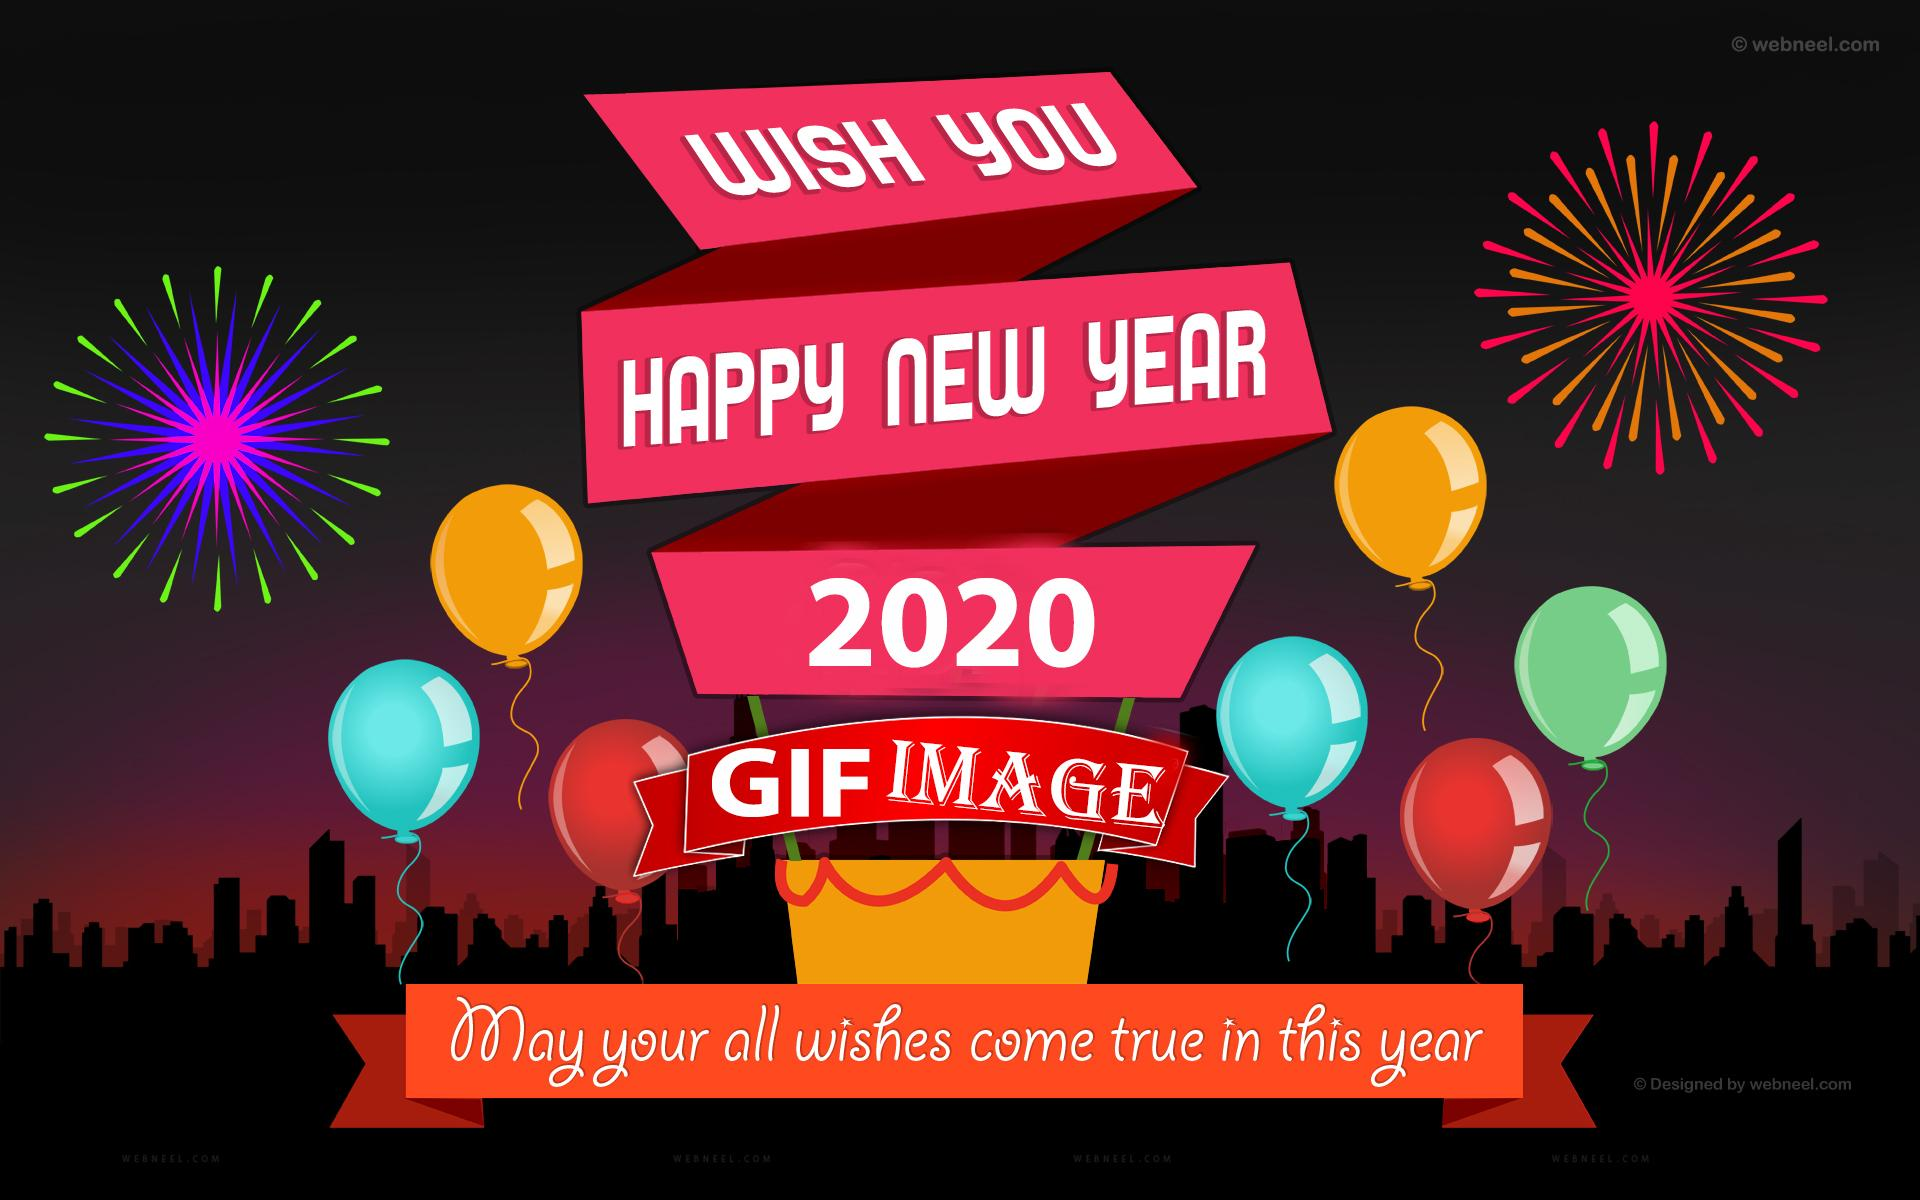 Happy New Year 2020 Gifs Animation Free Download